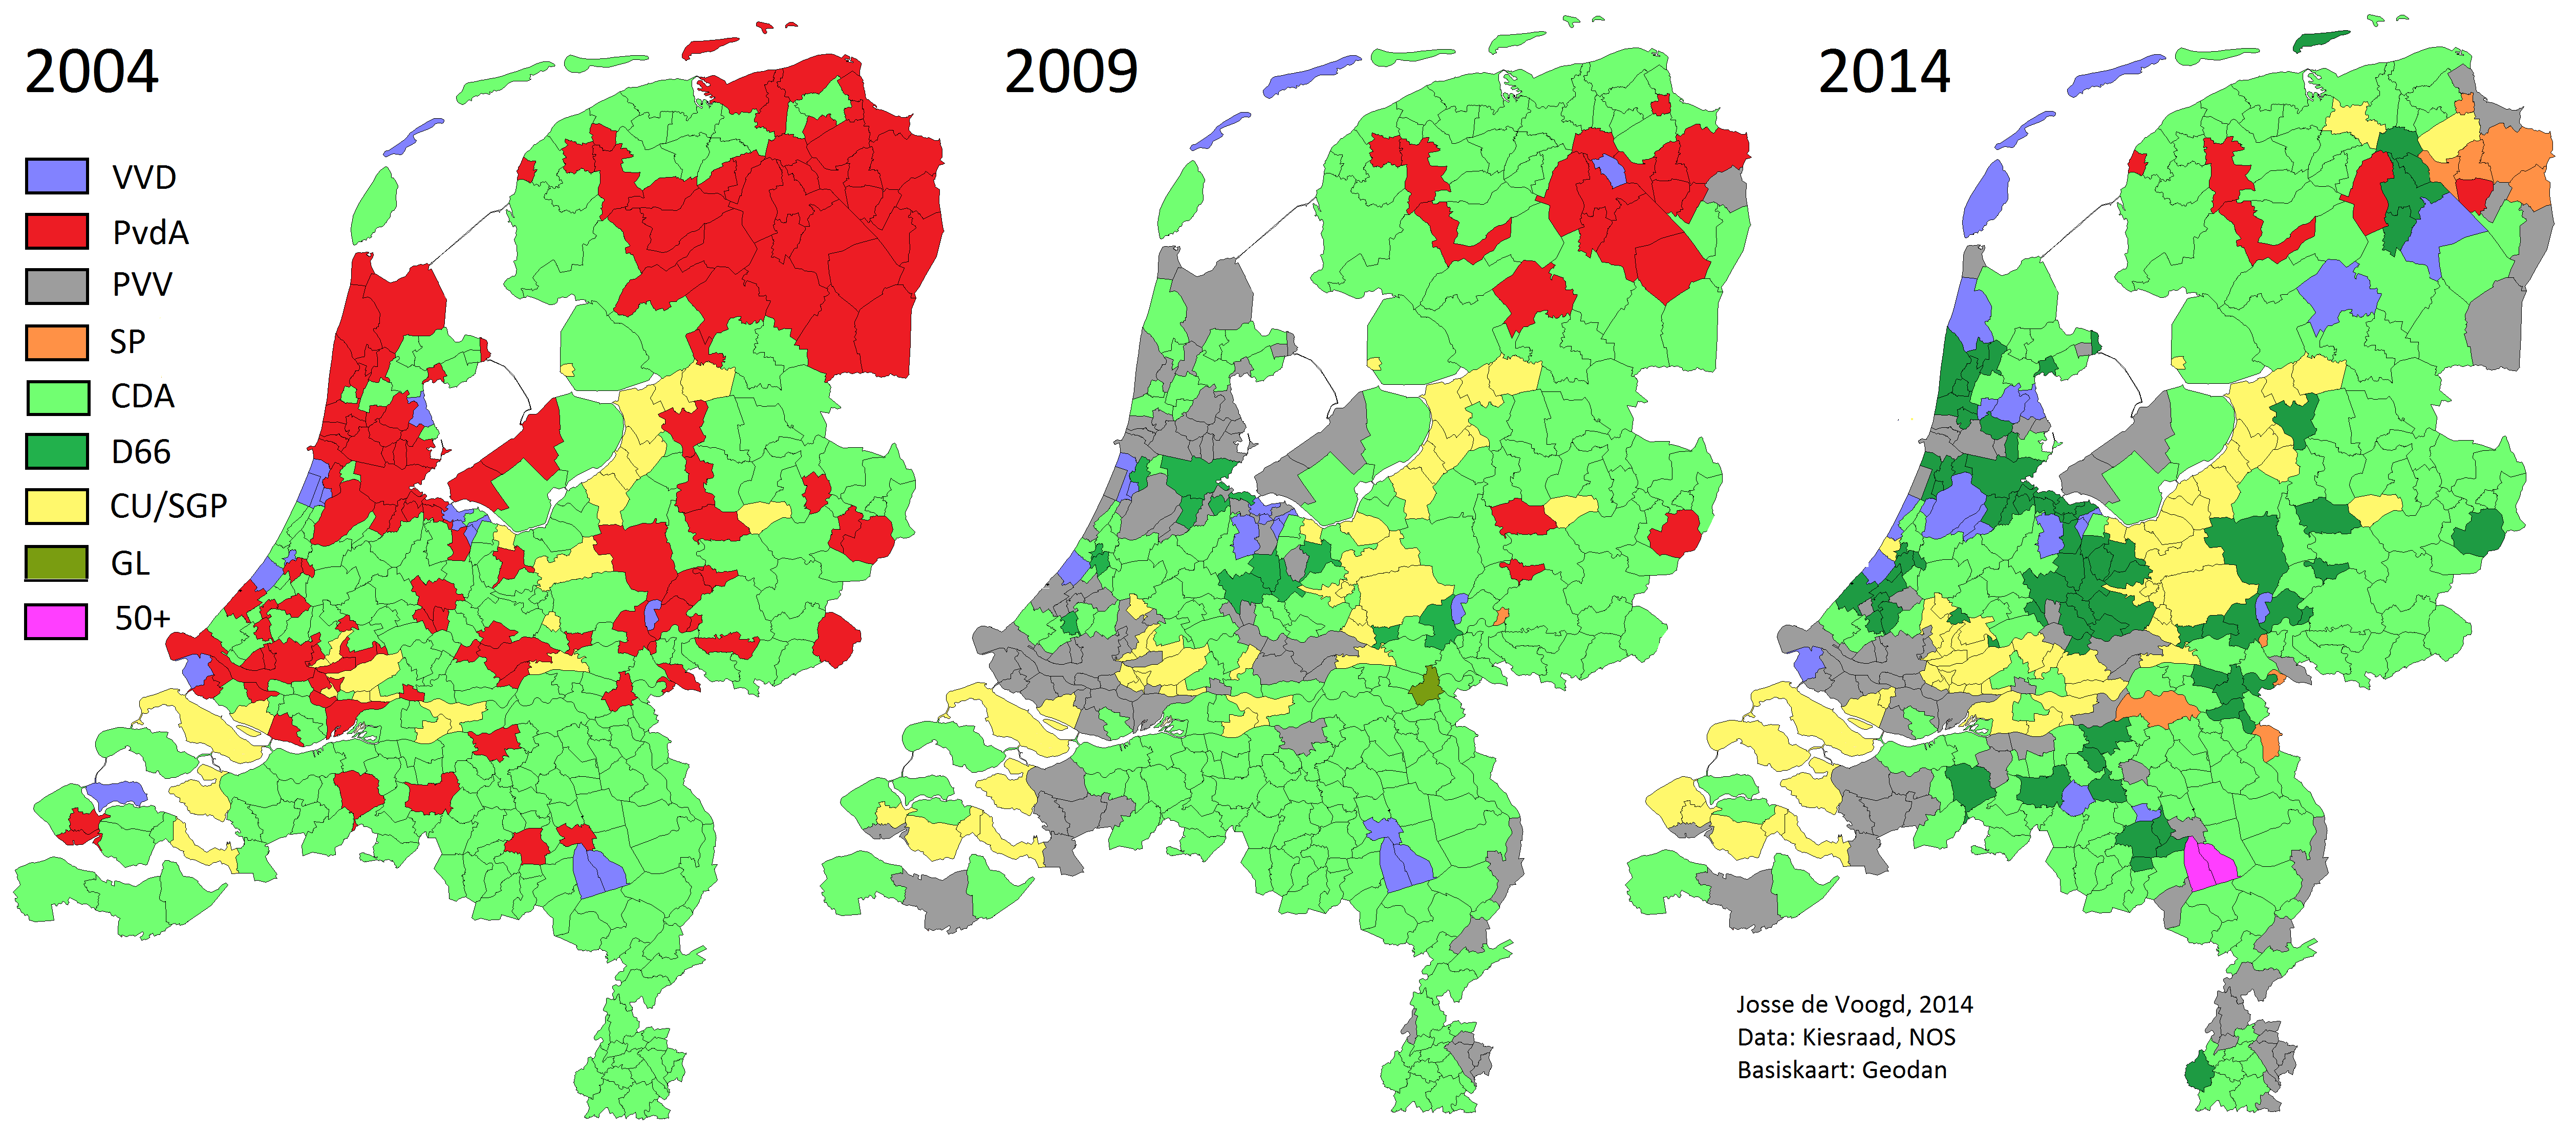 Netherlands World Elections - Religion map of world 2014